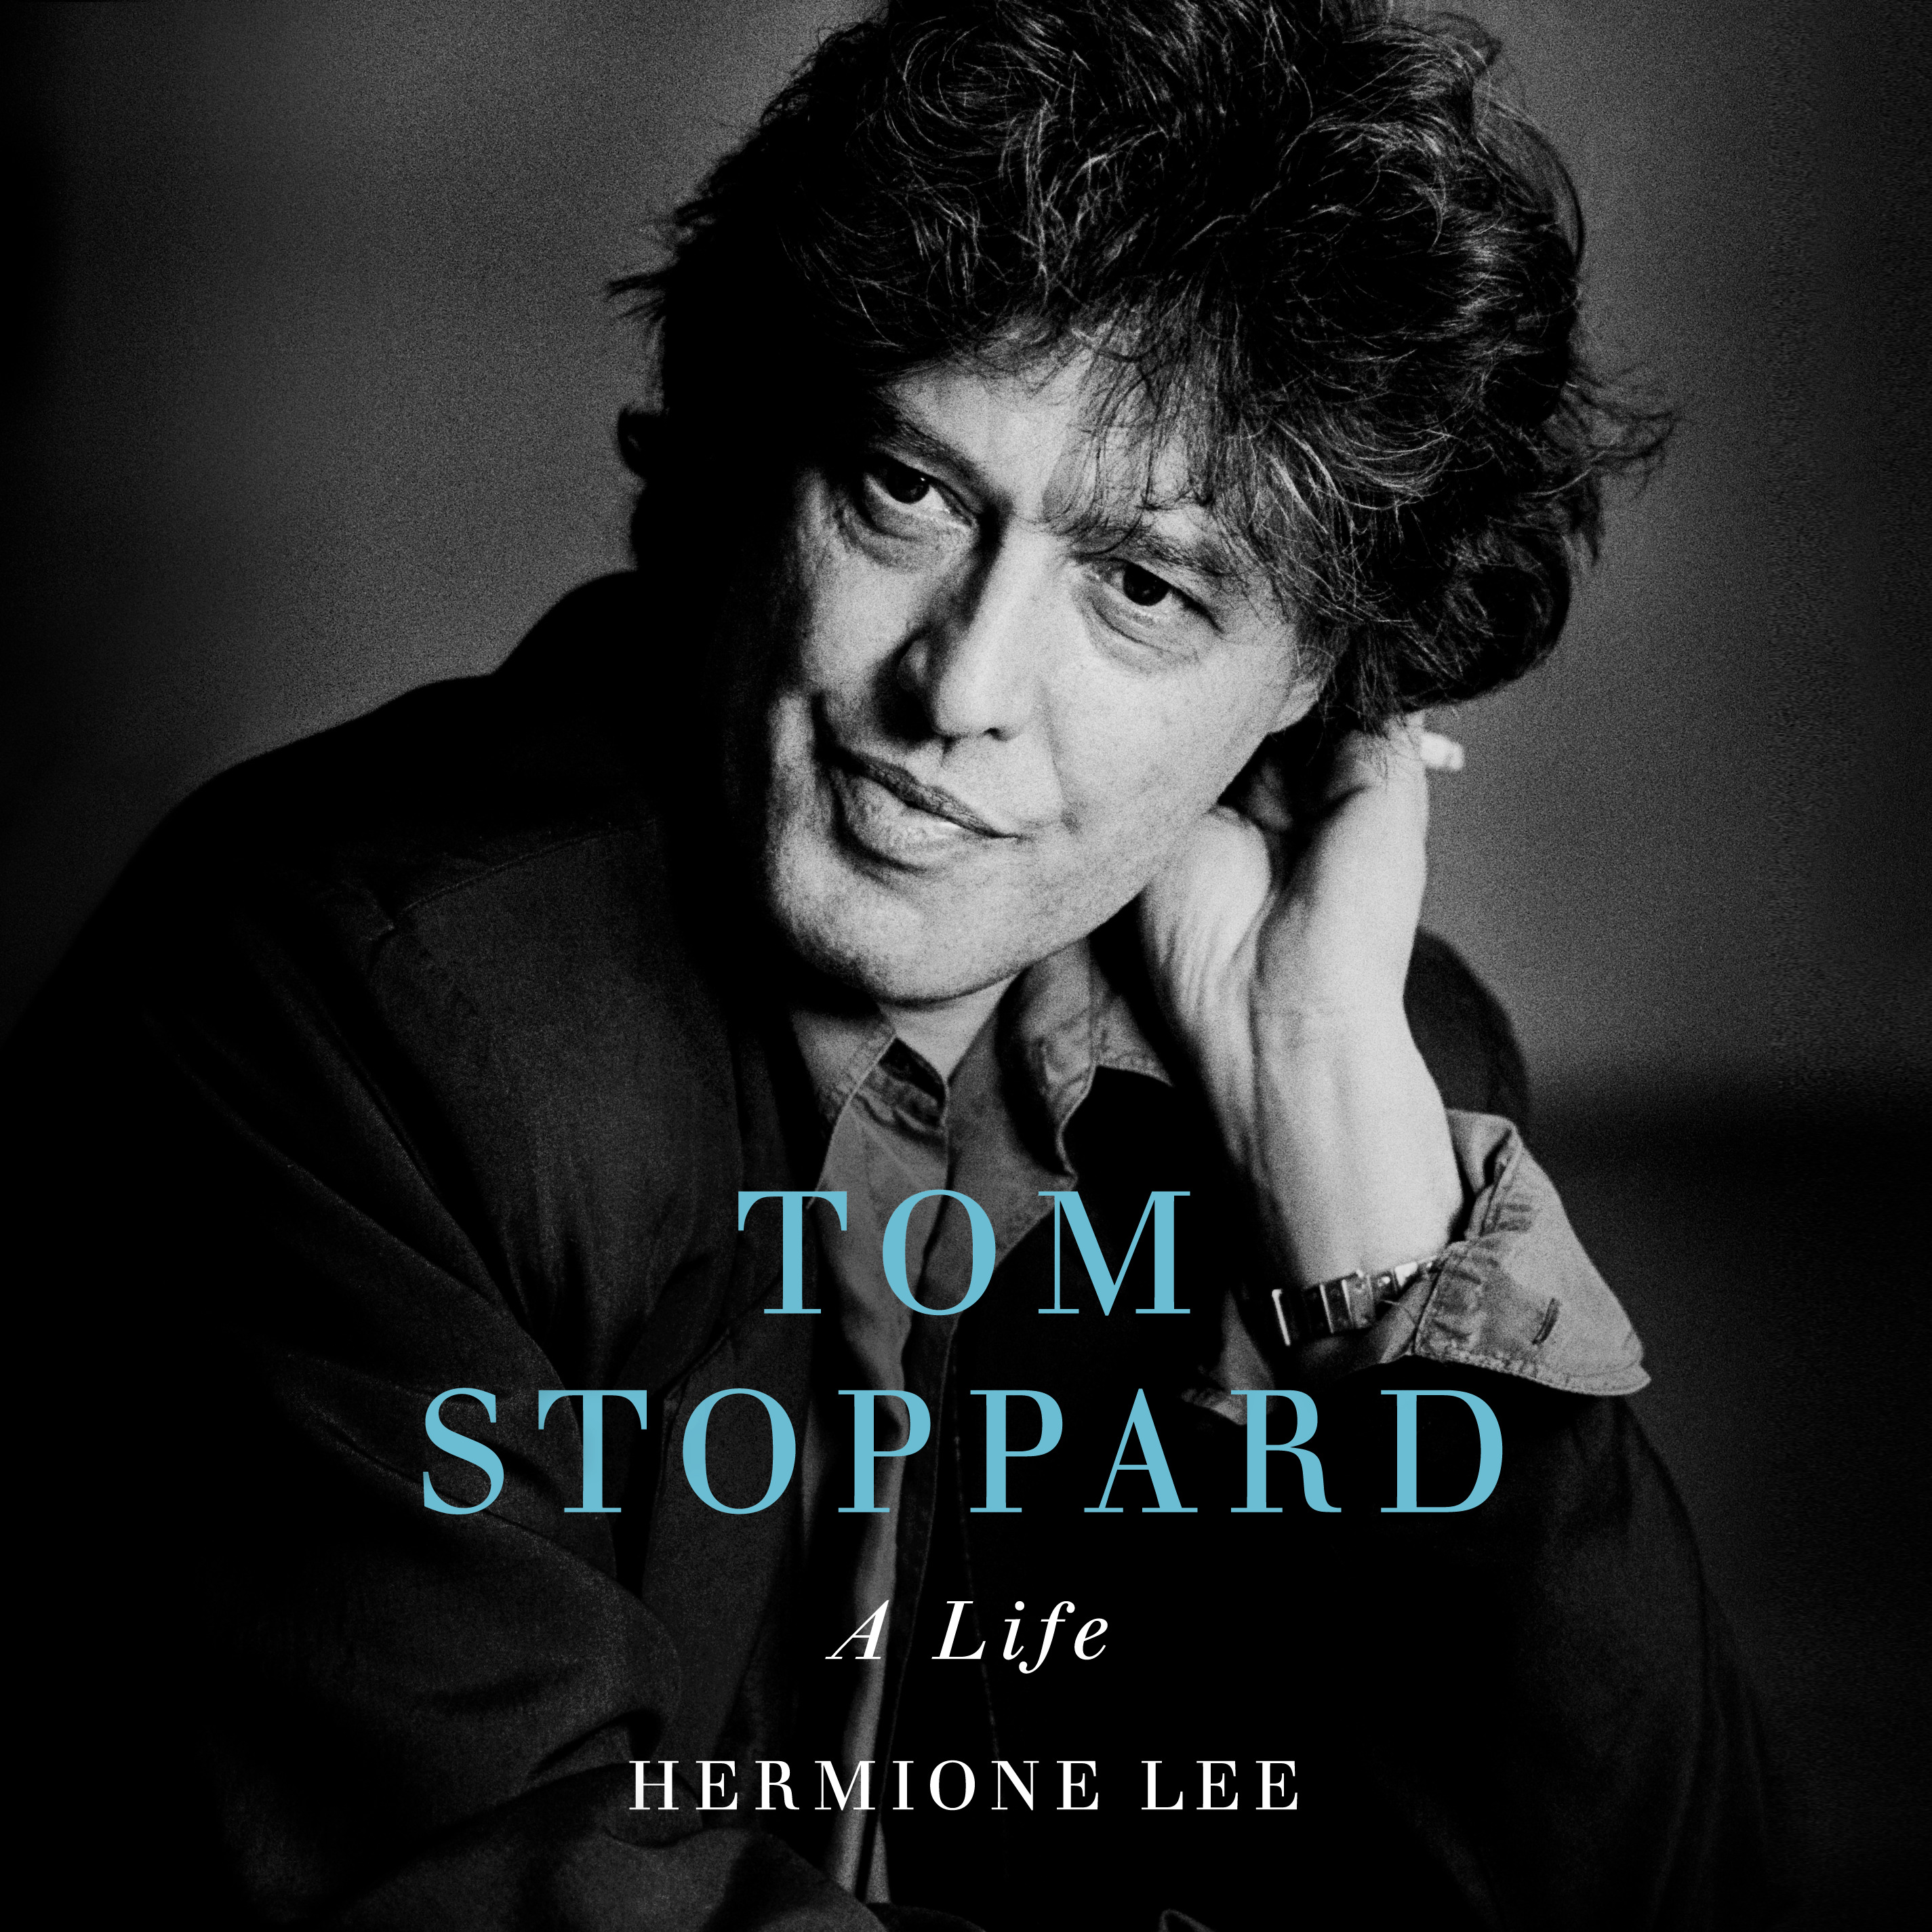 image for Tom Stoppard: A Life